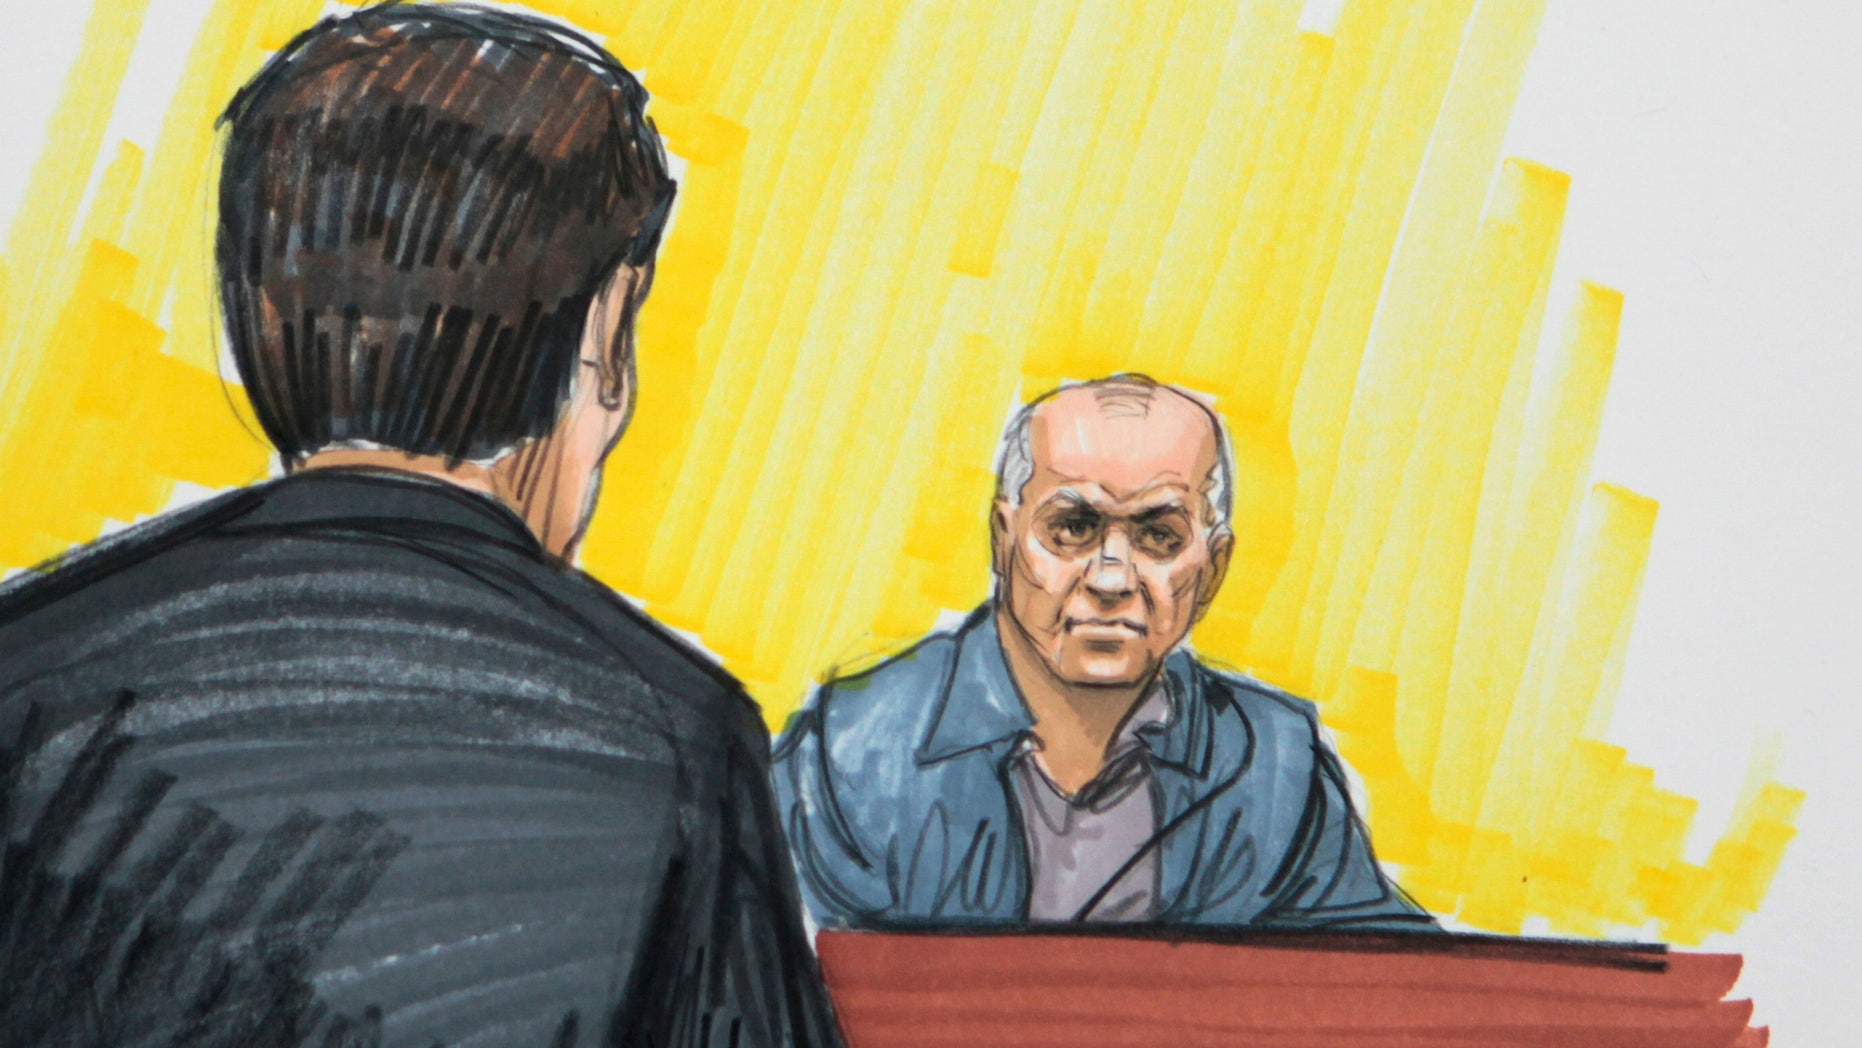 May 23, 2011:  In this file courtroom sketch, David Coleman Headley is shown in federal court in Chicago. Headley, who was convicted of charges related to a central role he played in the 2008 terrorist attacks in Mumbai, India.